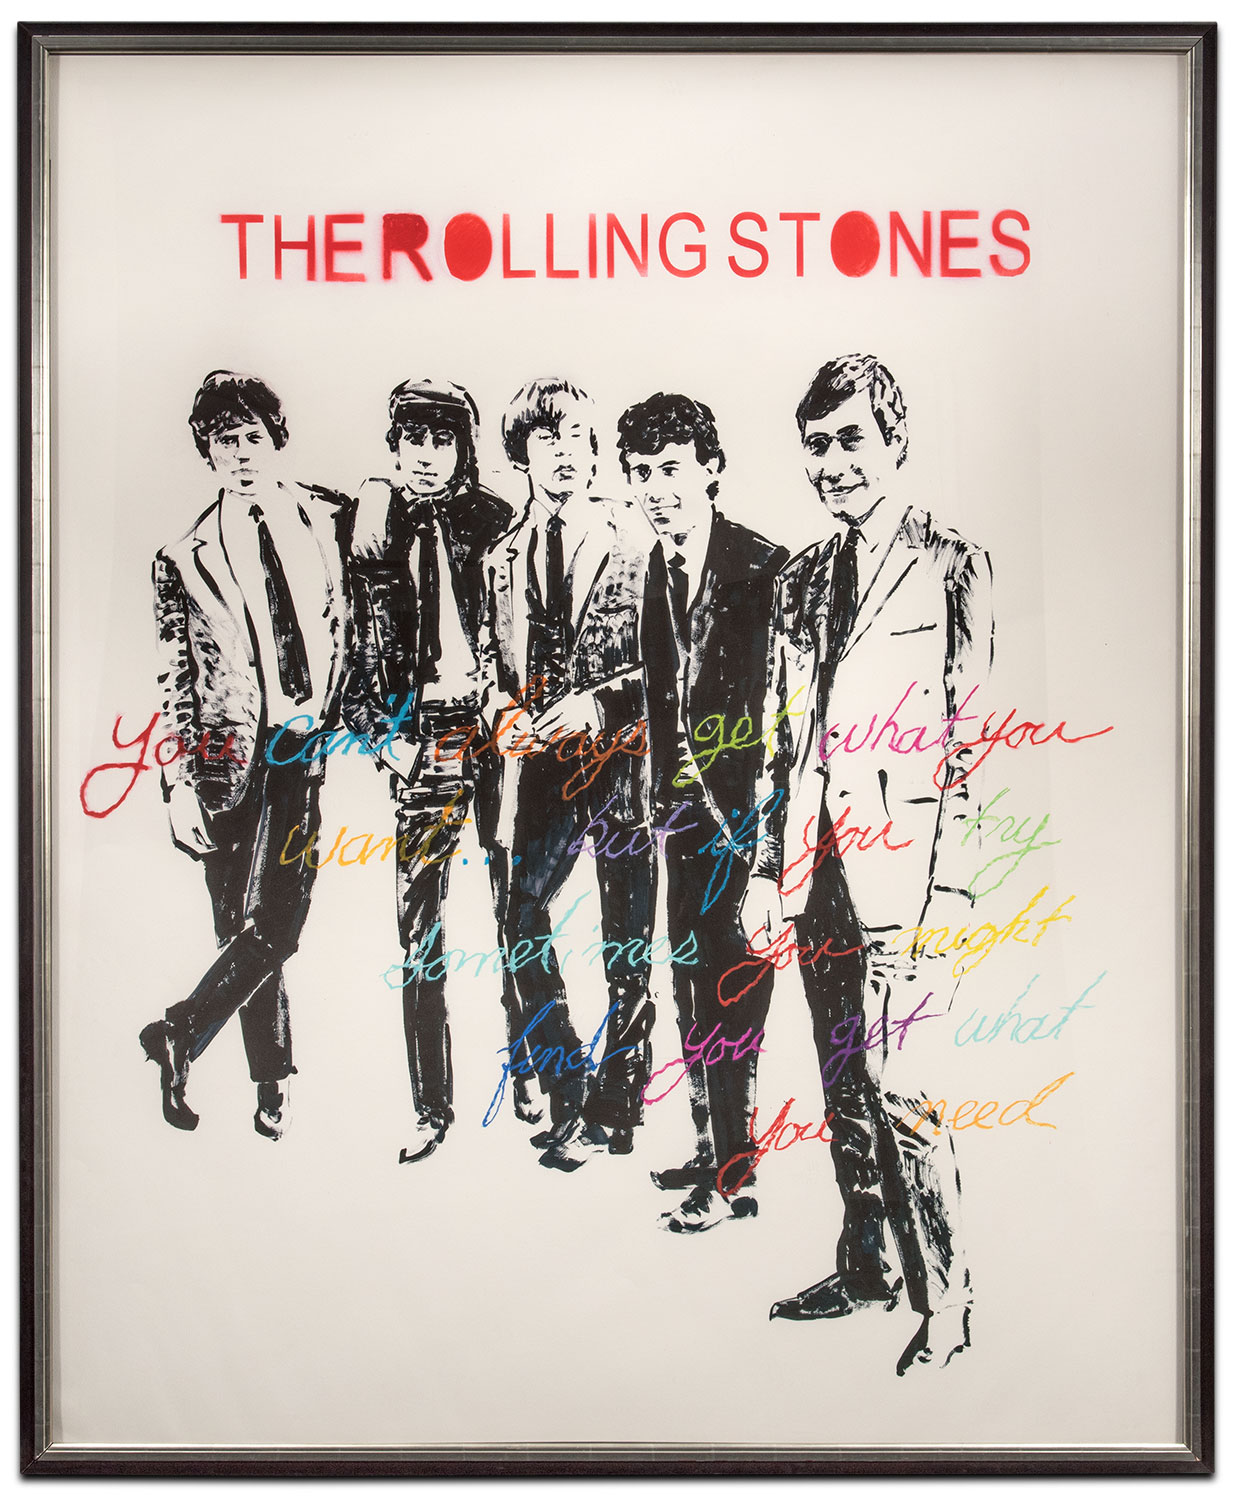 The Rolling Stones Framed Print Value City Furniture And